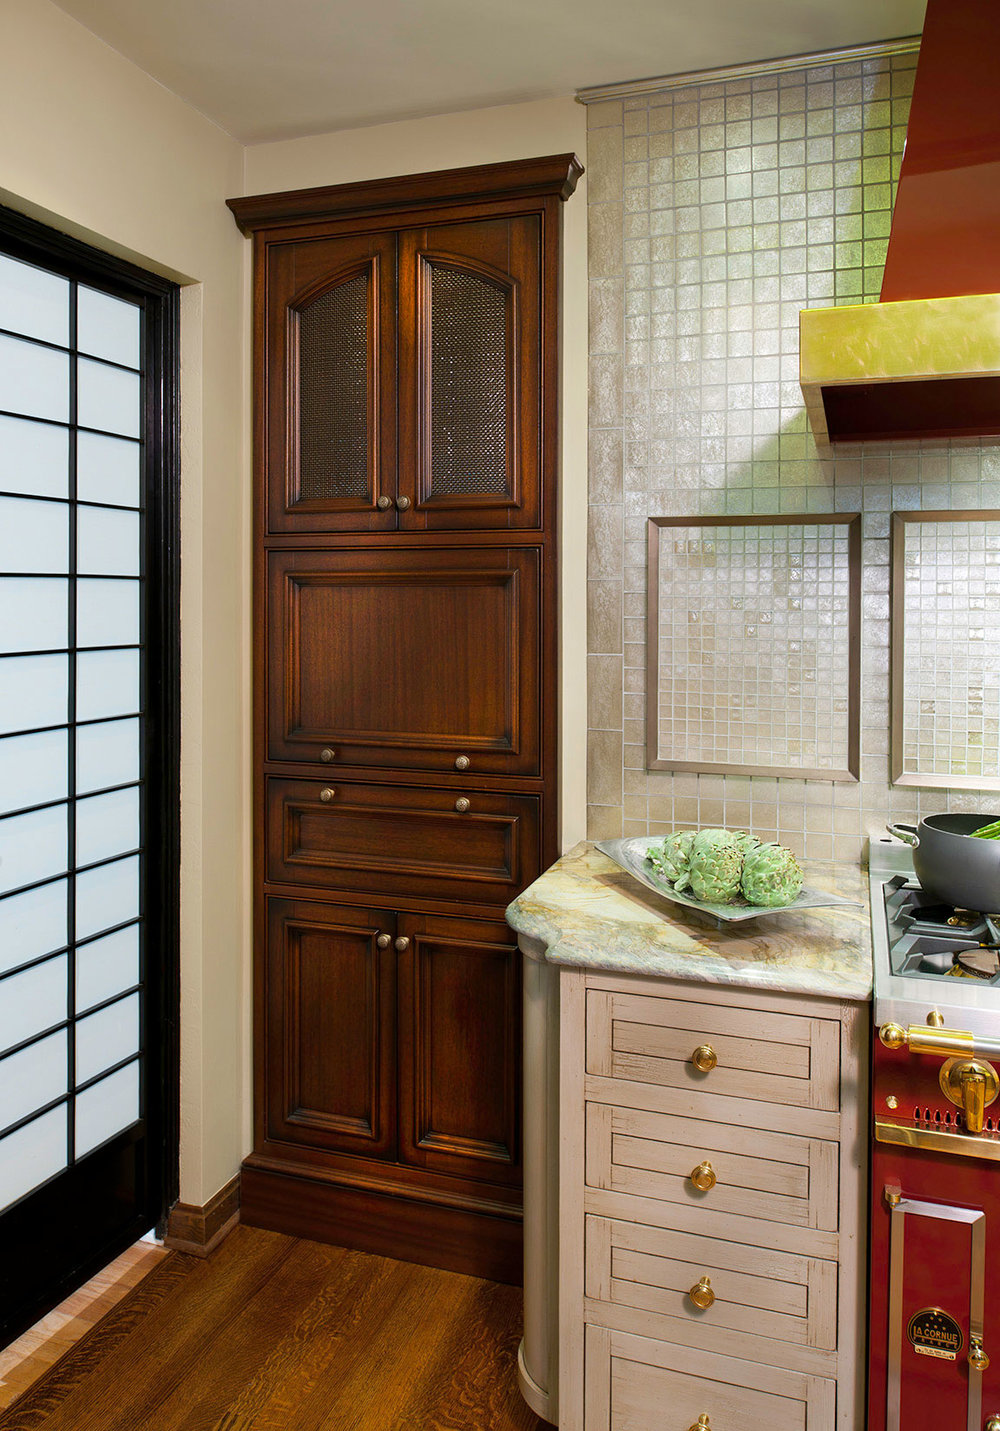 kitchen_bath_Concepts_pittsburgh_traditional_home5_12.jpg